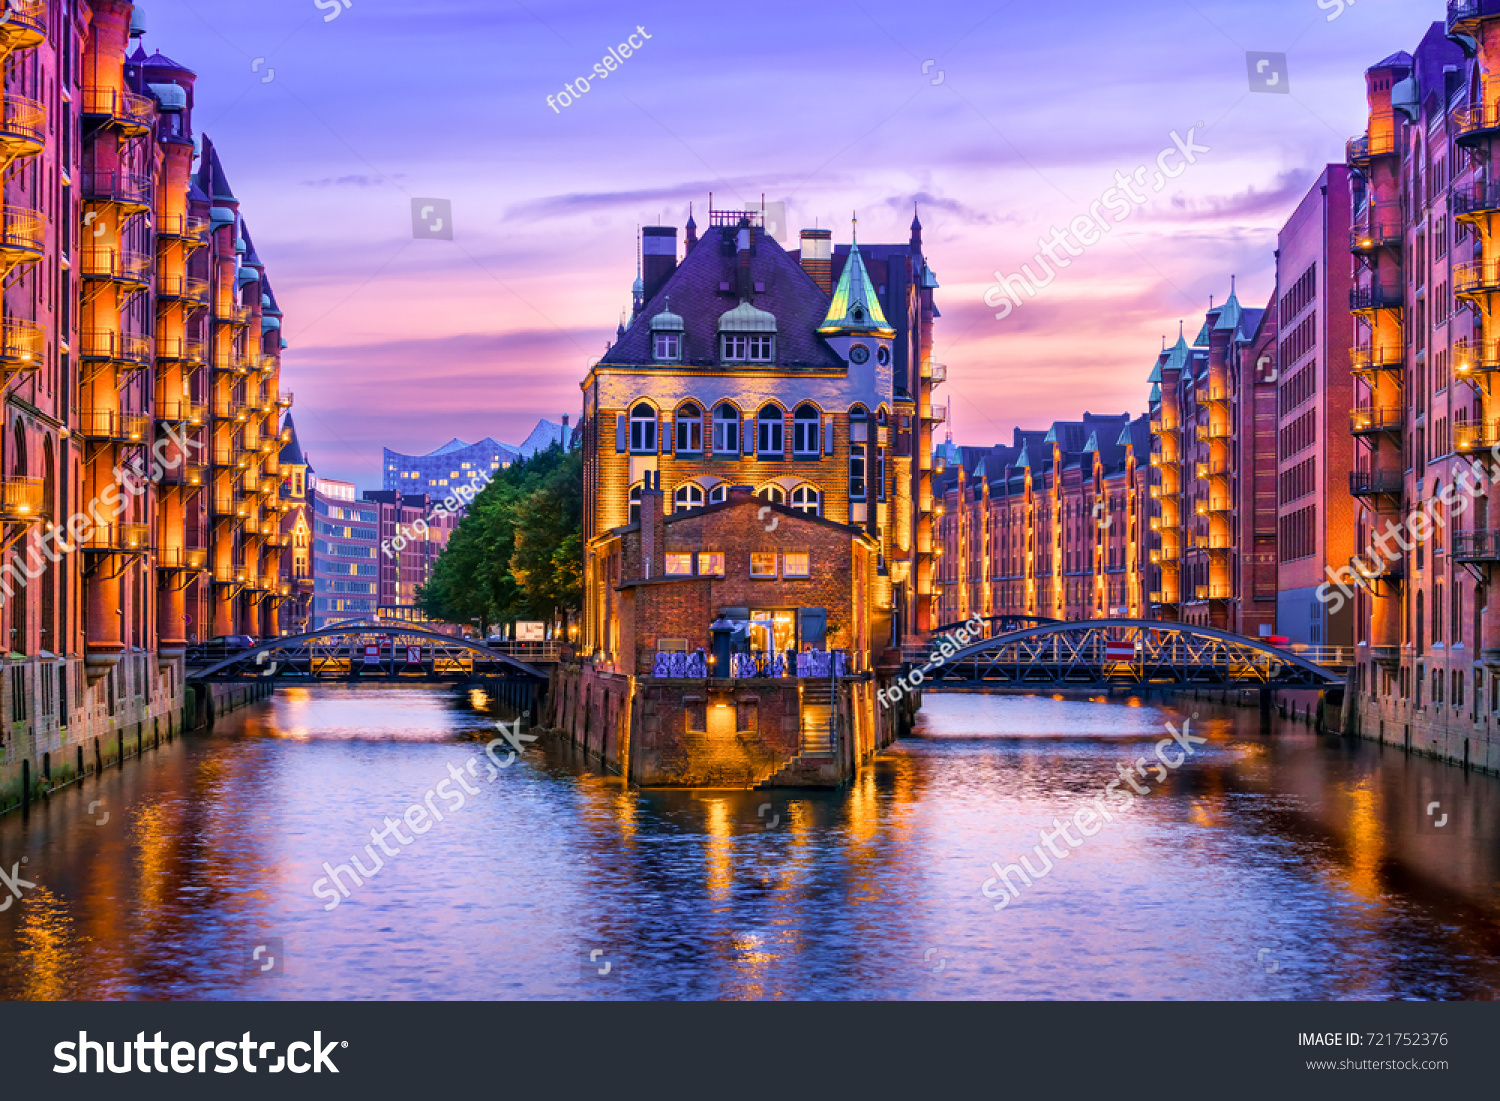 The Warehouse District (Speicherstadt) in Hamburg, Germany, at dusk. View of Wandrahmsfleet. The largest warehouse district in the world is located in the port of Hamburg within the HafenCity quarter. #721752376